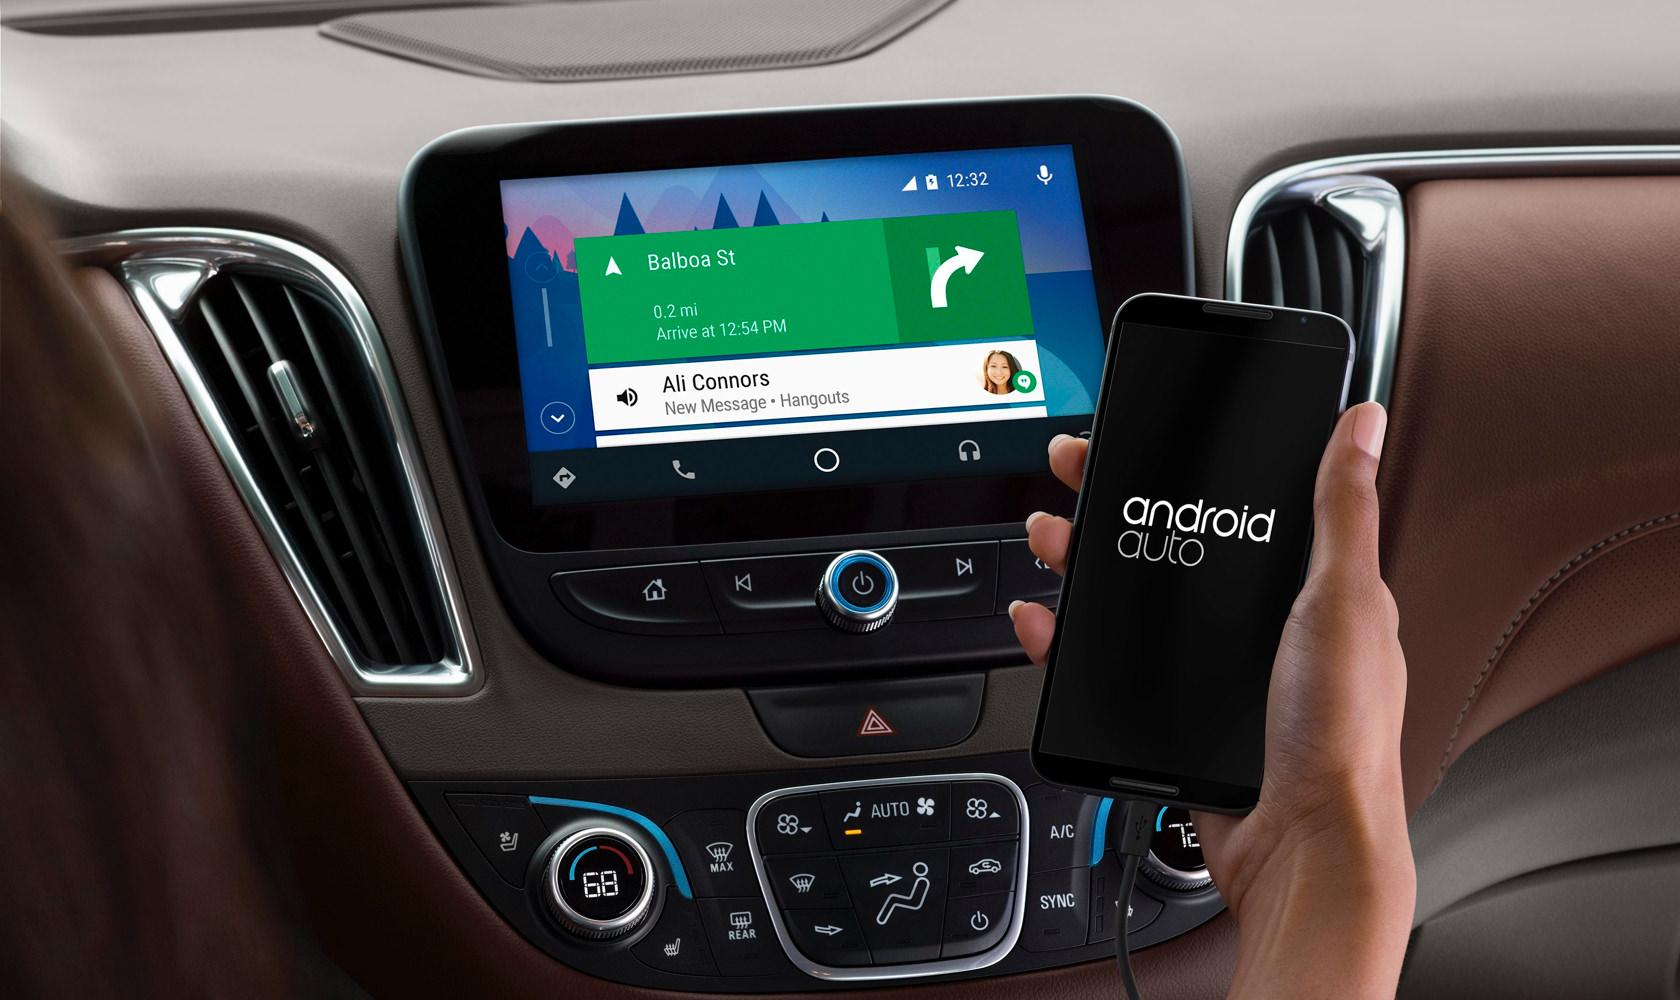 Android Auto voice app and voice user interface